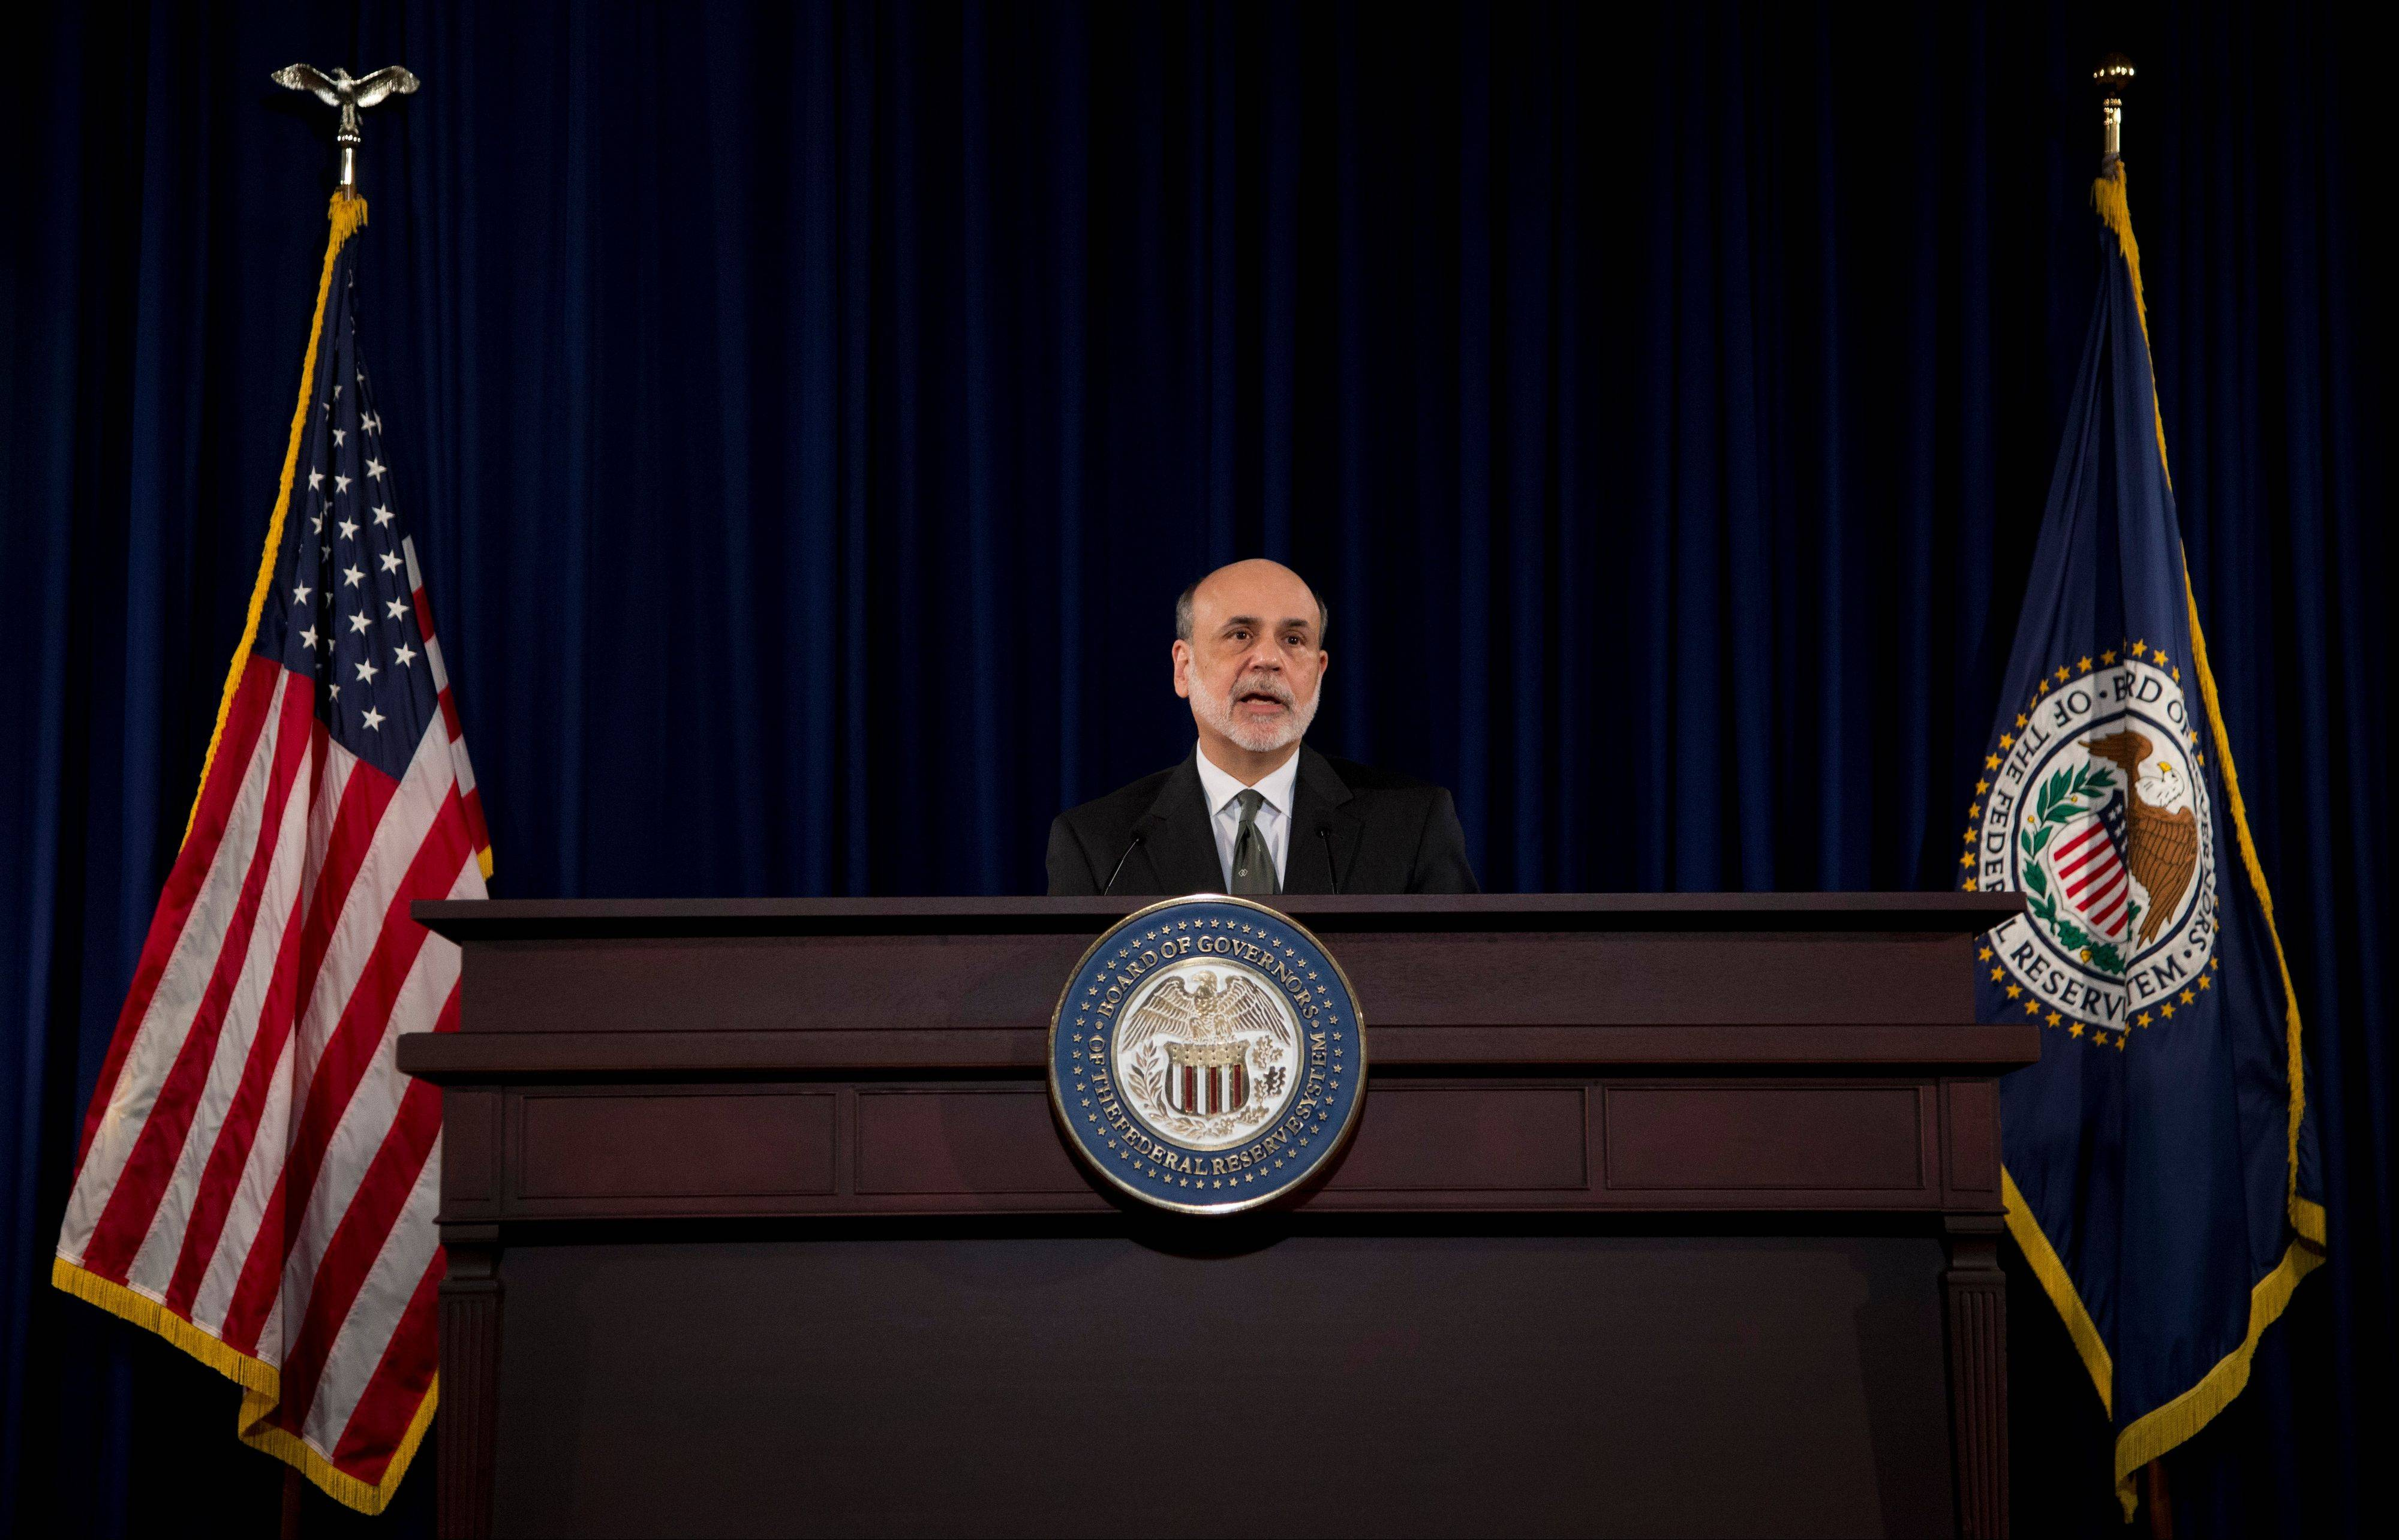 Federal Reserve Chairman Ben Bernanke speaks during a news conference in Washington.